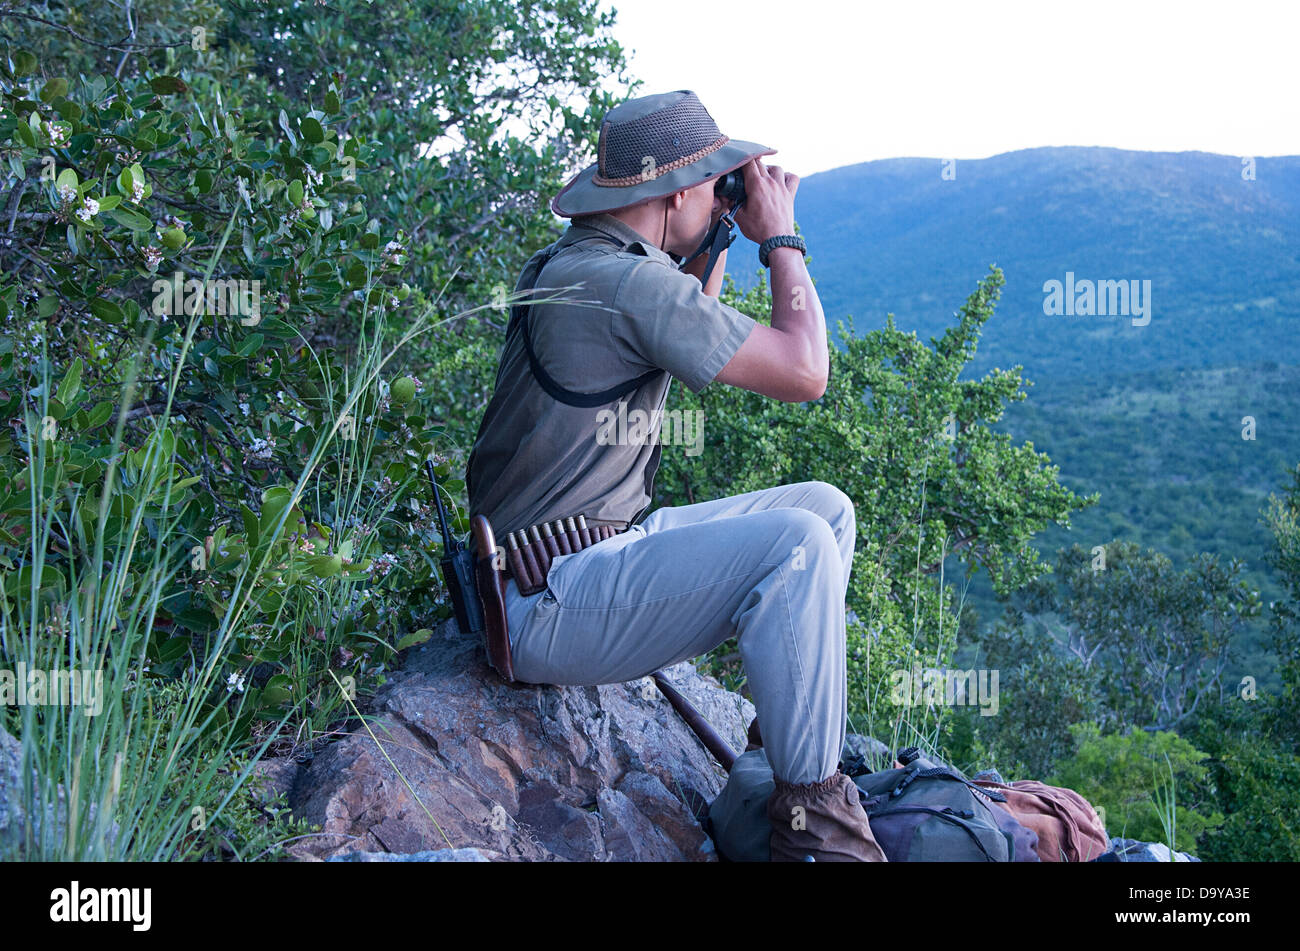 A guide surveys the view from the top of the climb. South Africa. - Stock Image